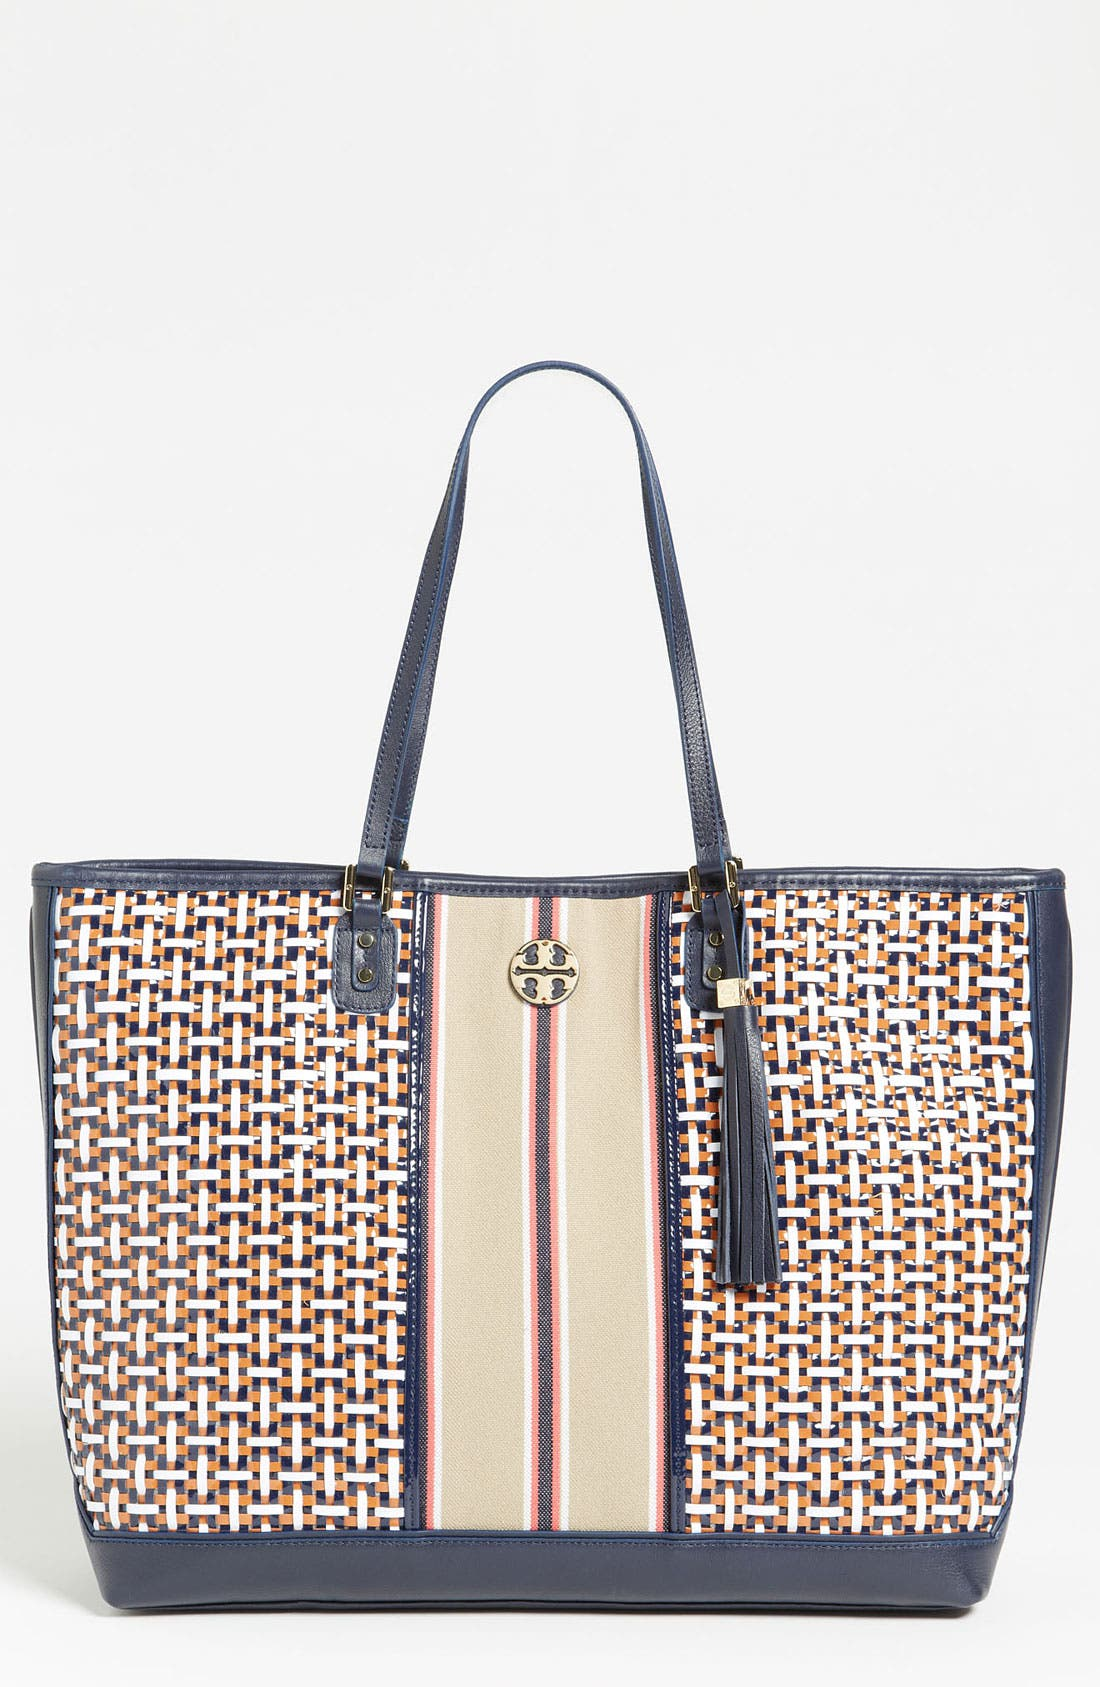 Alternate Image 1 Selected - Tory Burch 'Vintage Logo' Tote